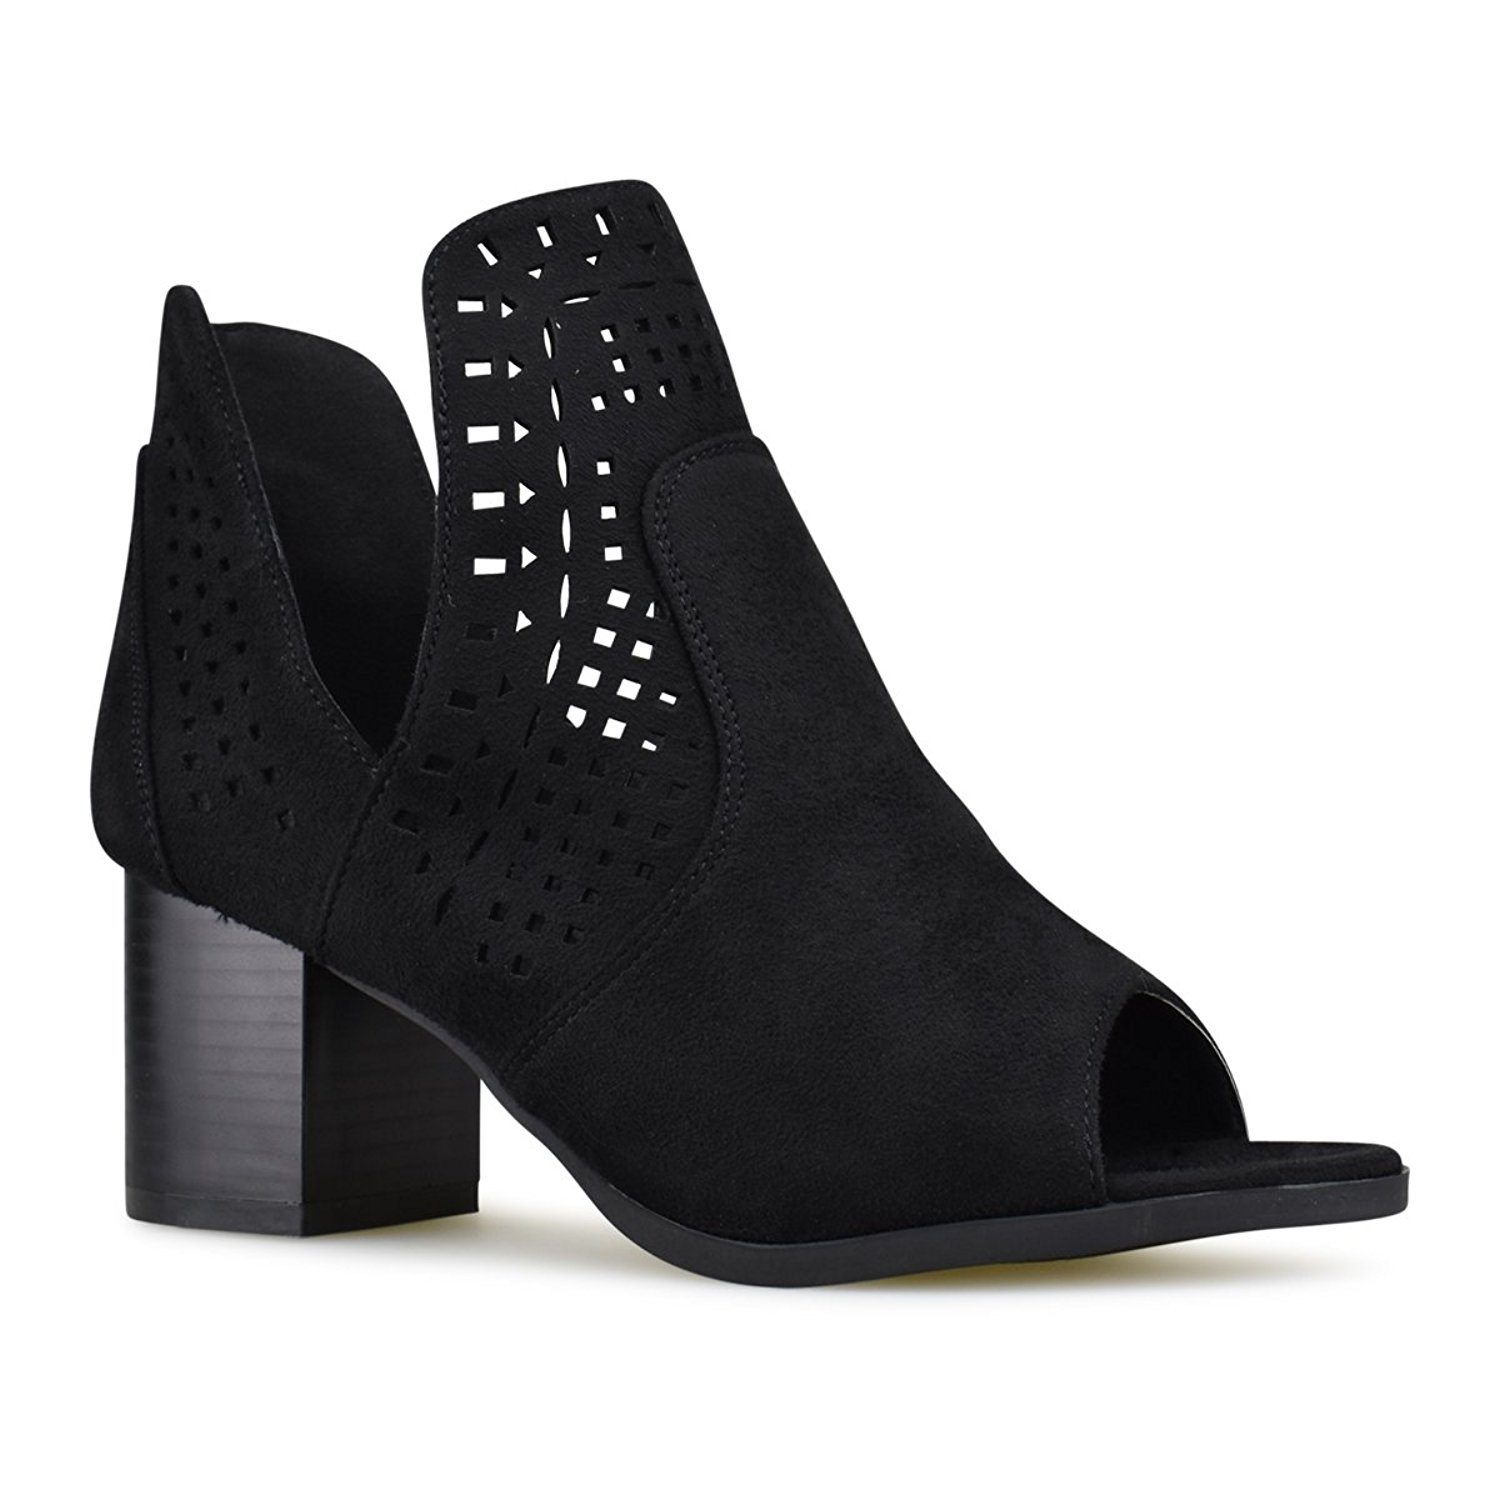 Premier Standard Women's Perforated Cut Out Heeled Bootie - Faux Leather Pull On Boot - Women's Mid Heel Shoe